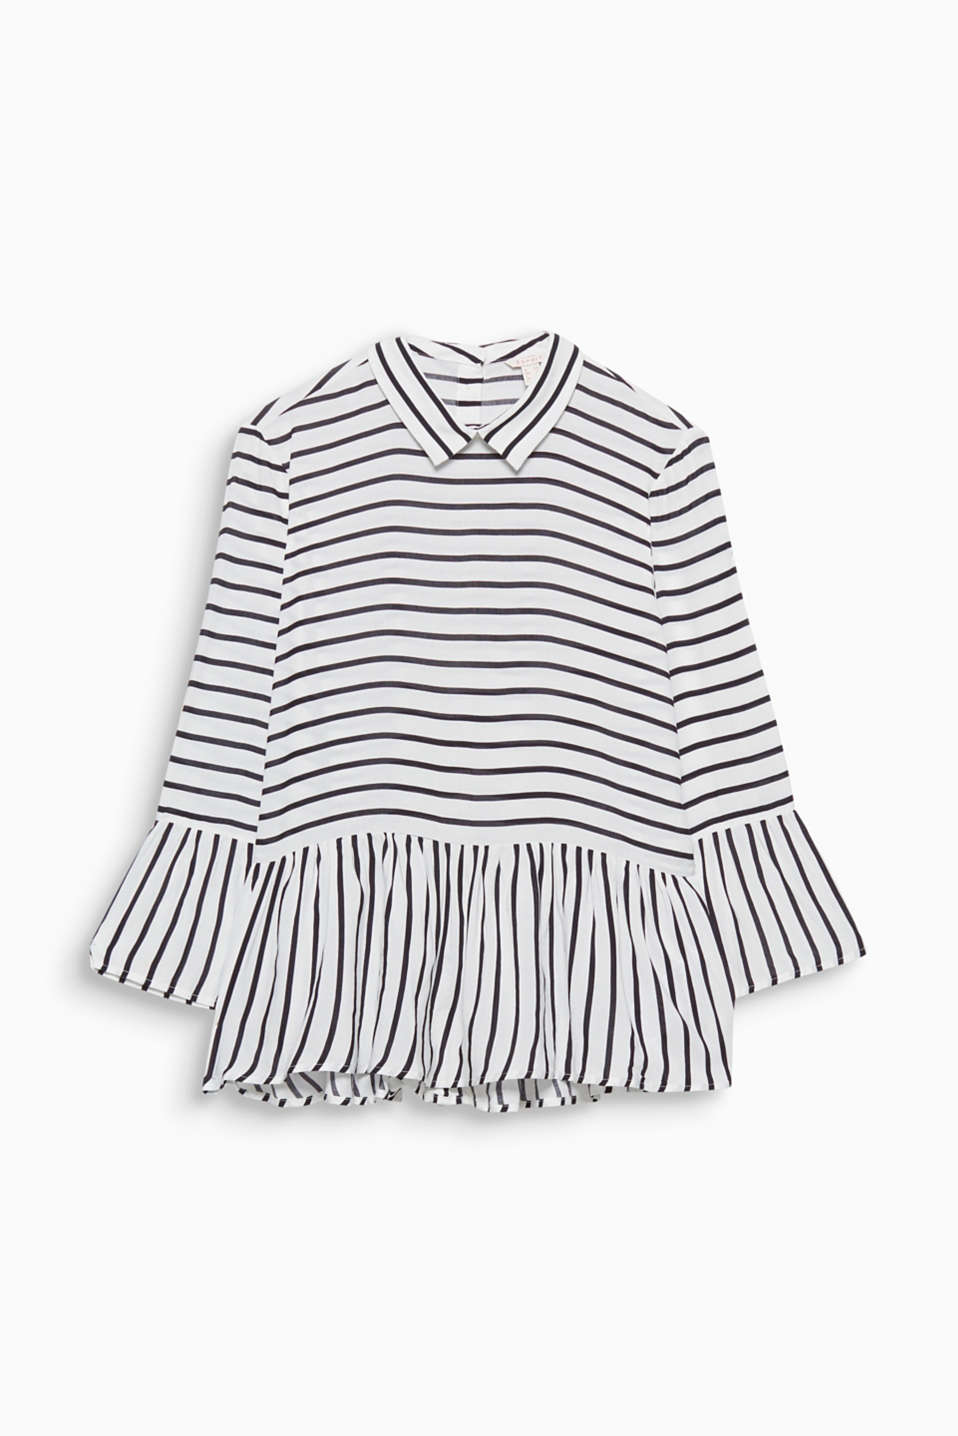 Clean stripes meet up with playful flounces and a peplum - and give your blouse a brand new style!